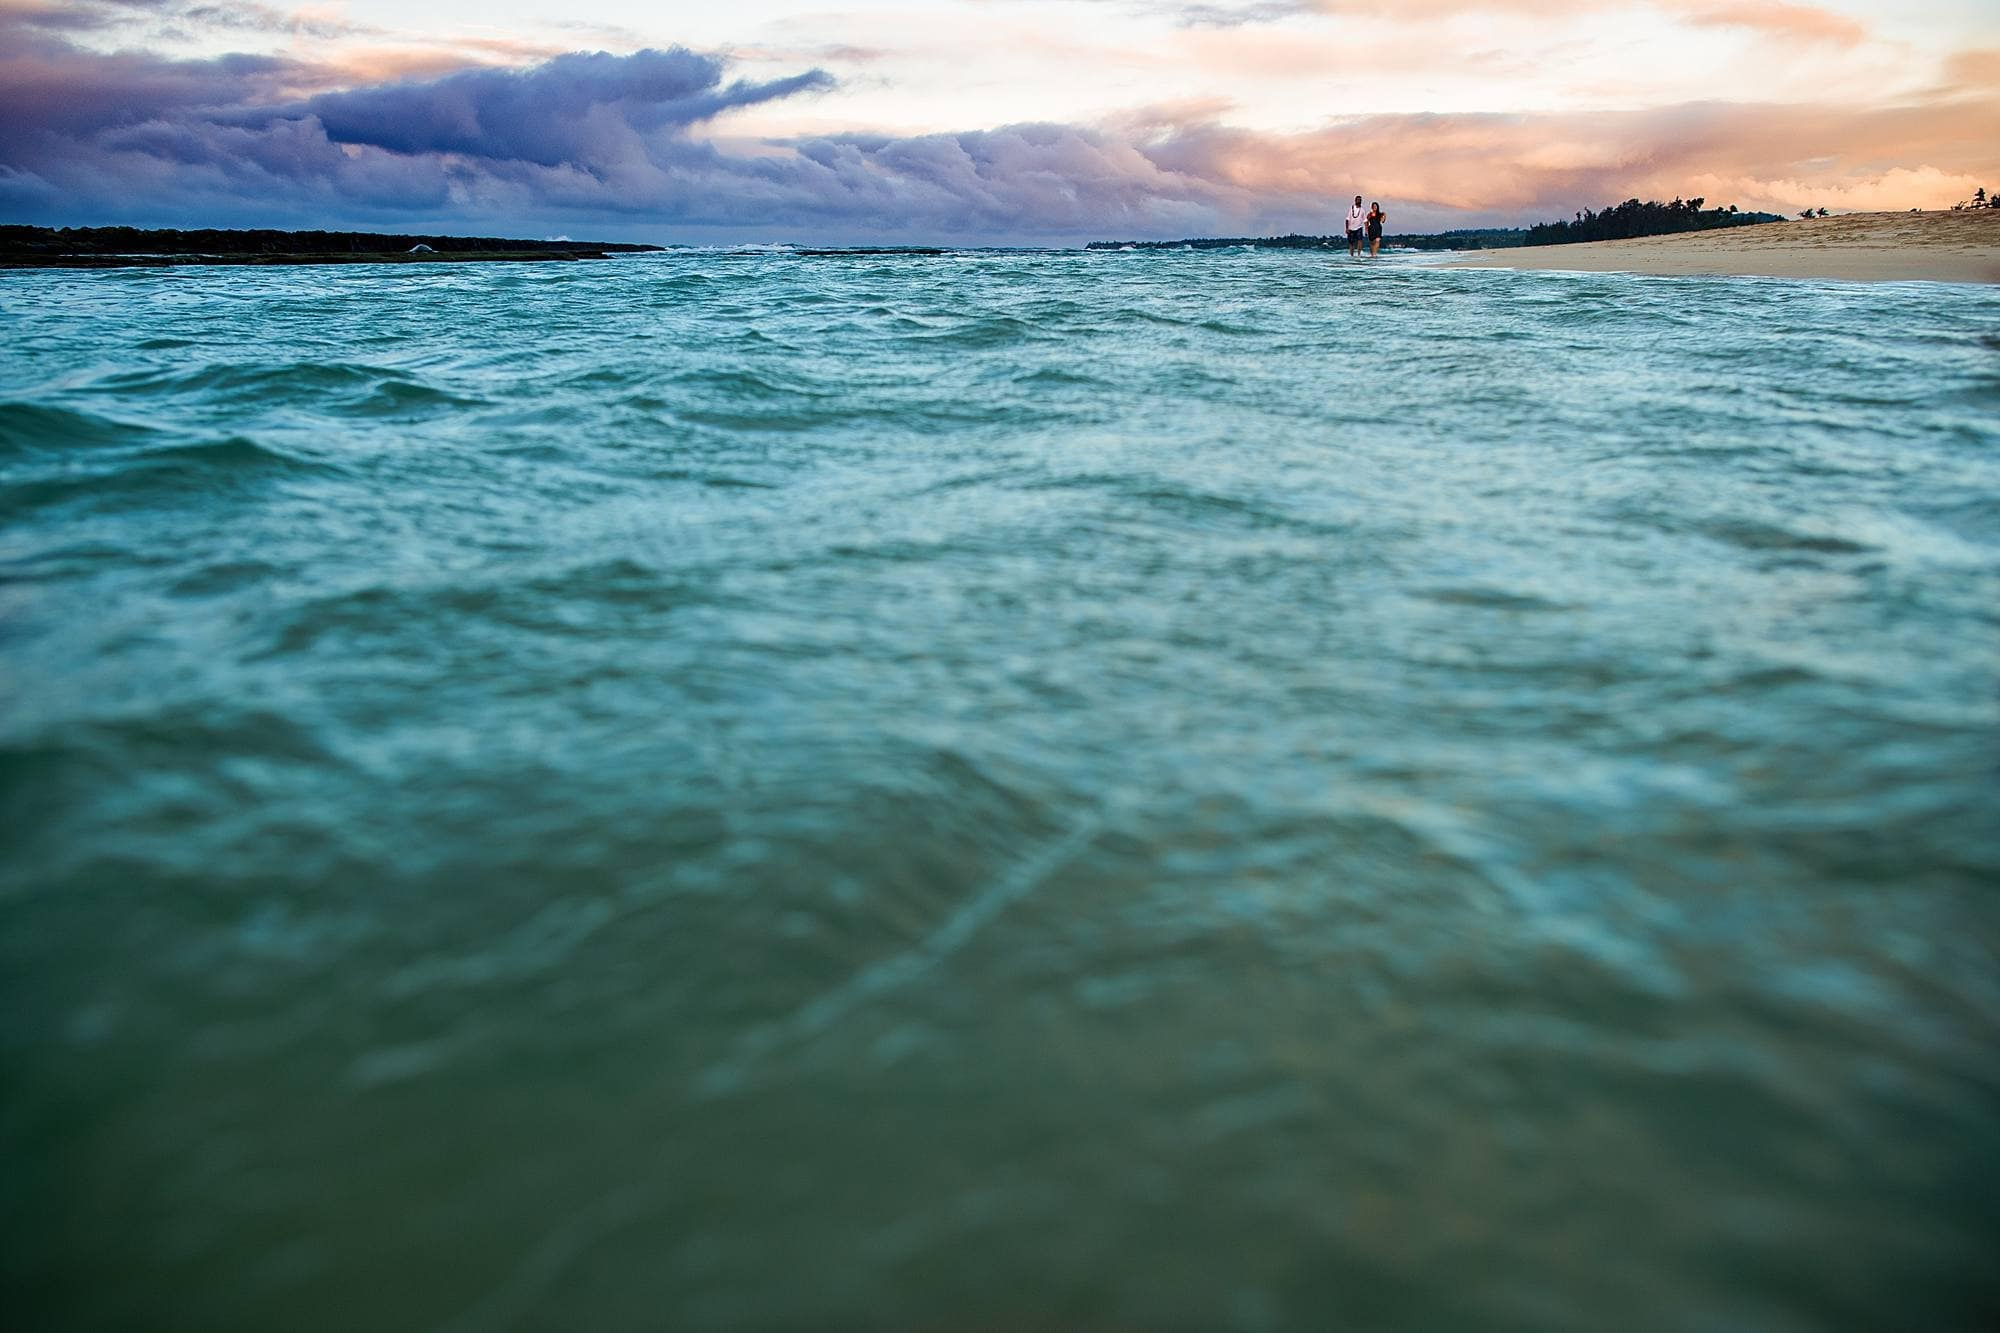 ocean photography with a couple in maui, hawaii